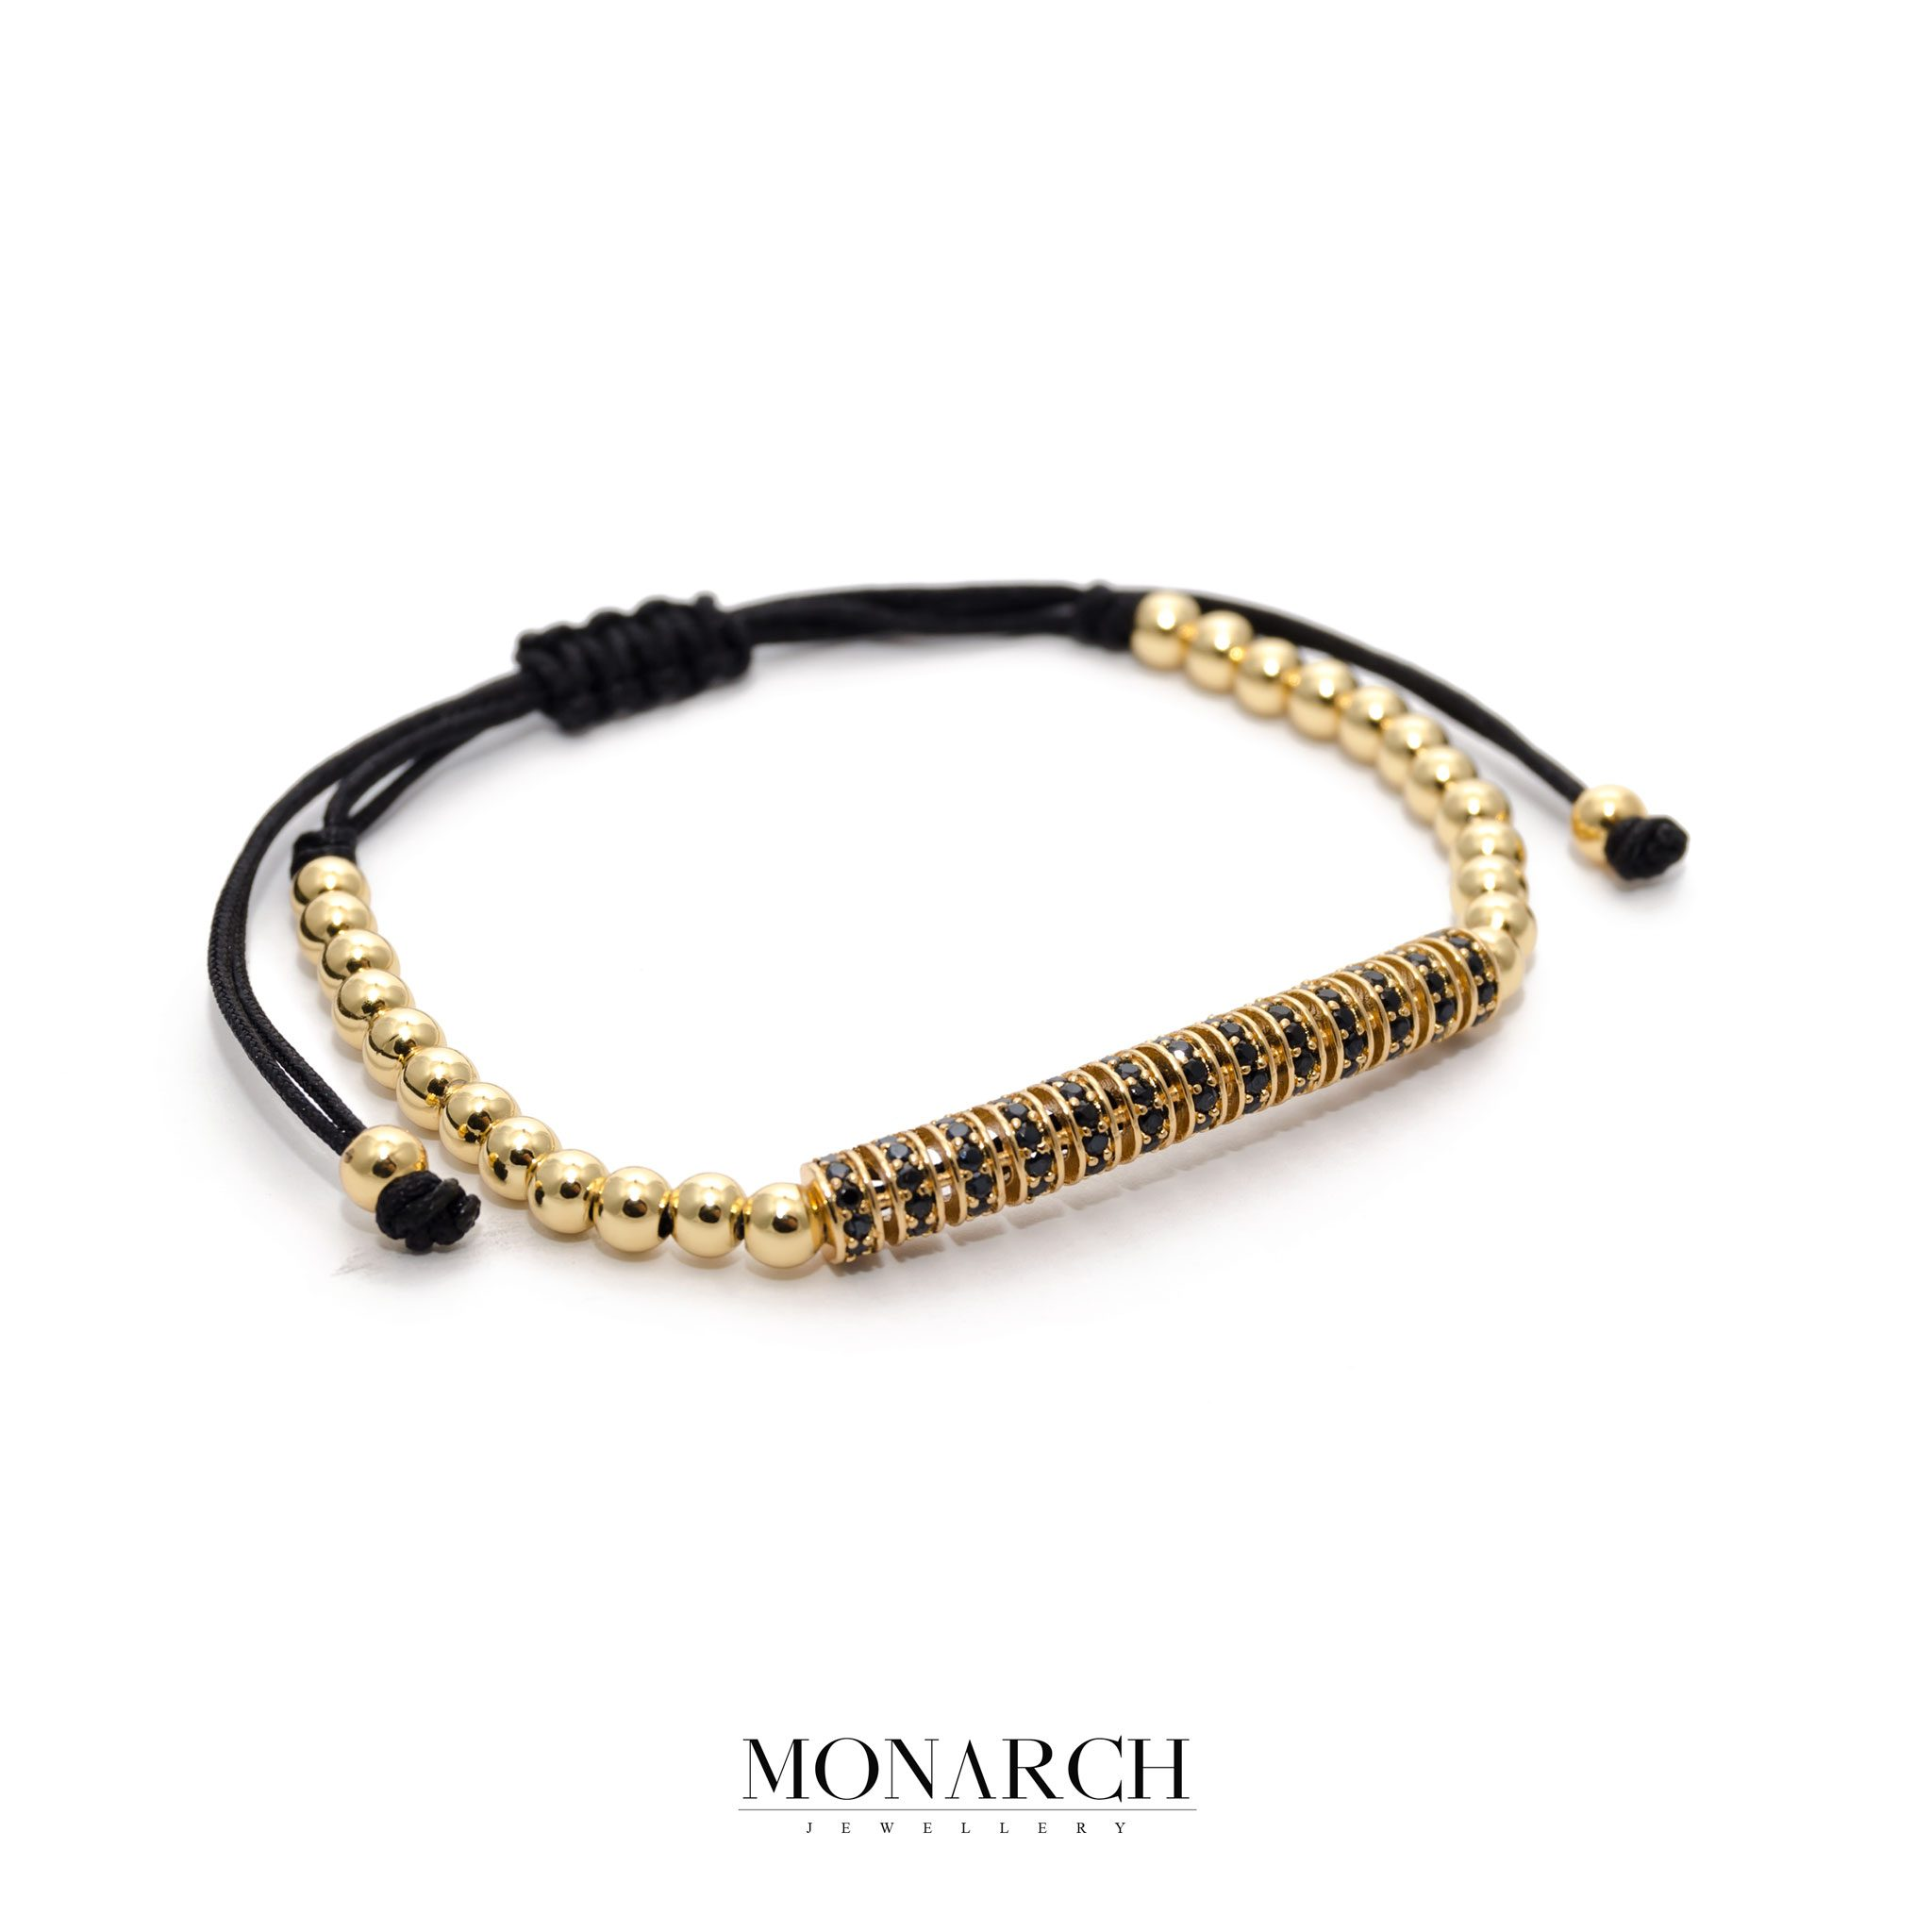 8af5df221e0b4 24K Gold Black Micro Pave Macrame Bracelet. Monarch Jewellery ...